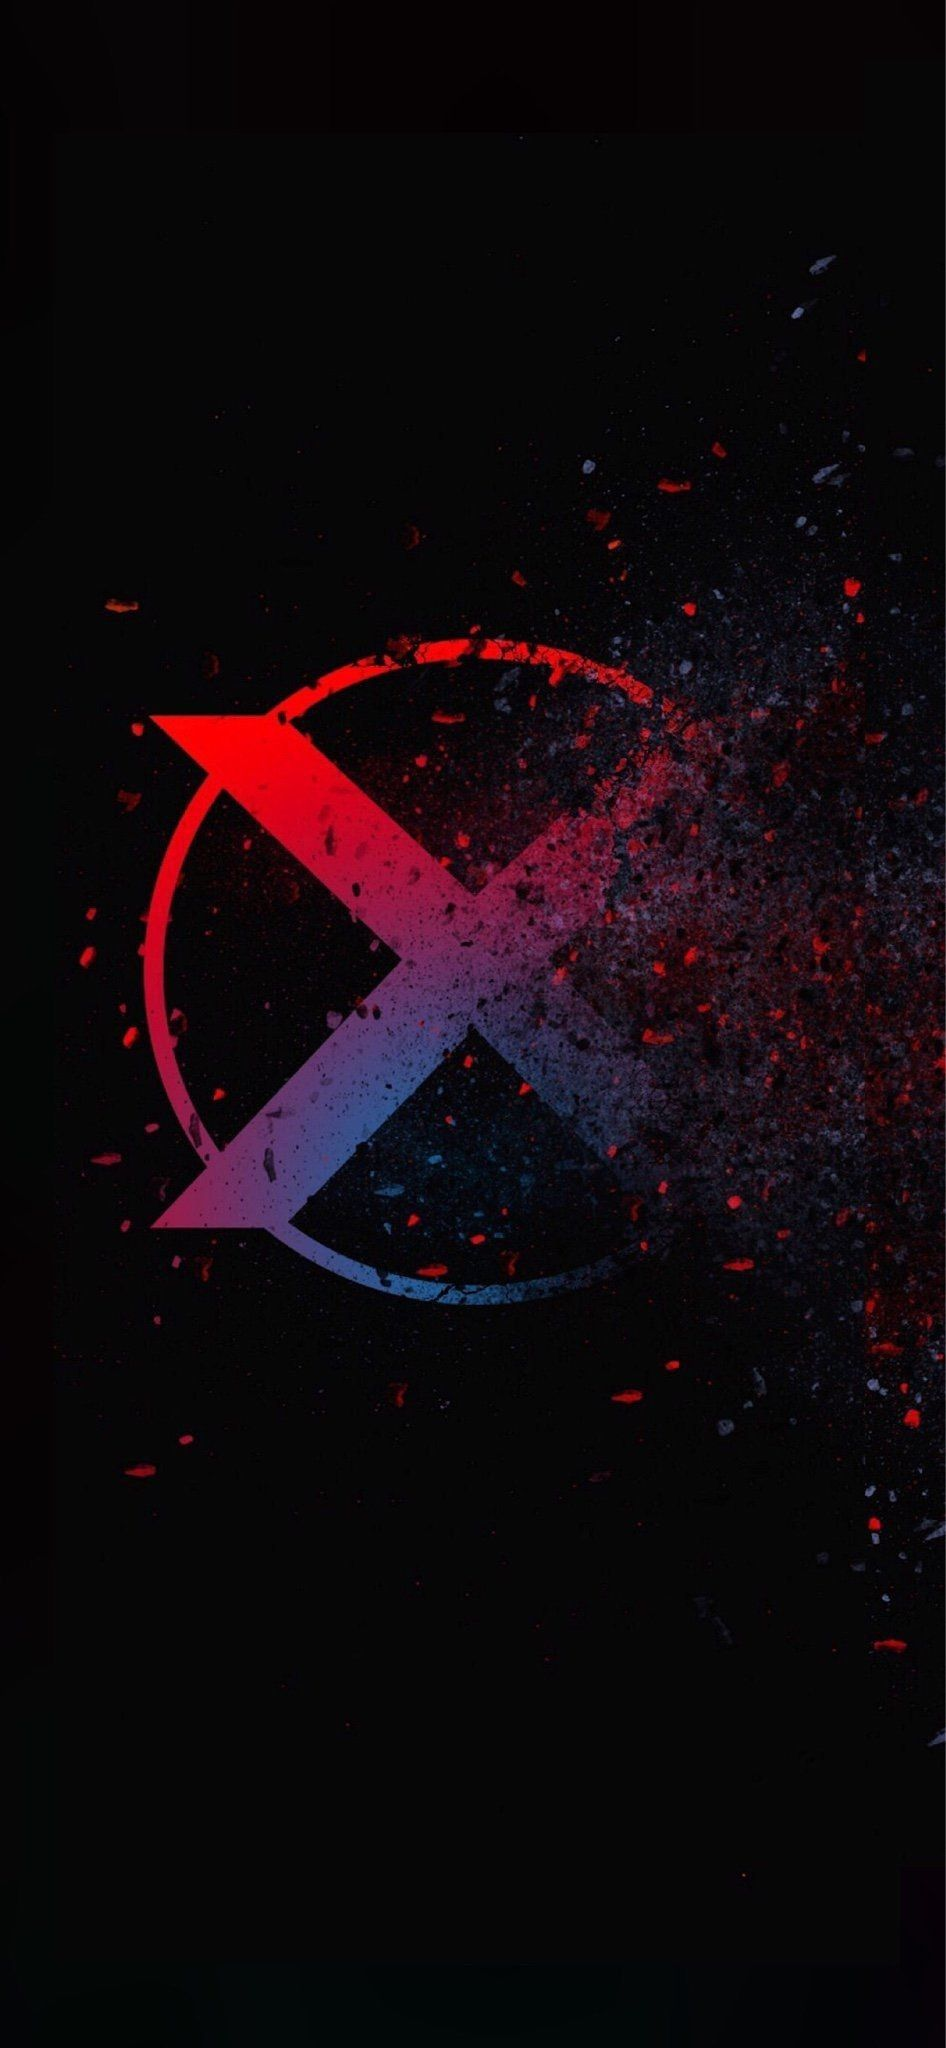 Pin By Melody P On All Things X Men Phone Wallpaper For Men Iphone Wallpaper Logo Glitch Wallpaper